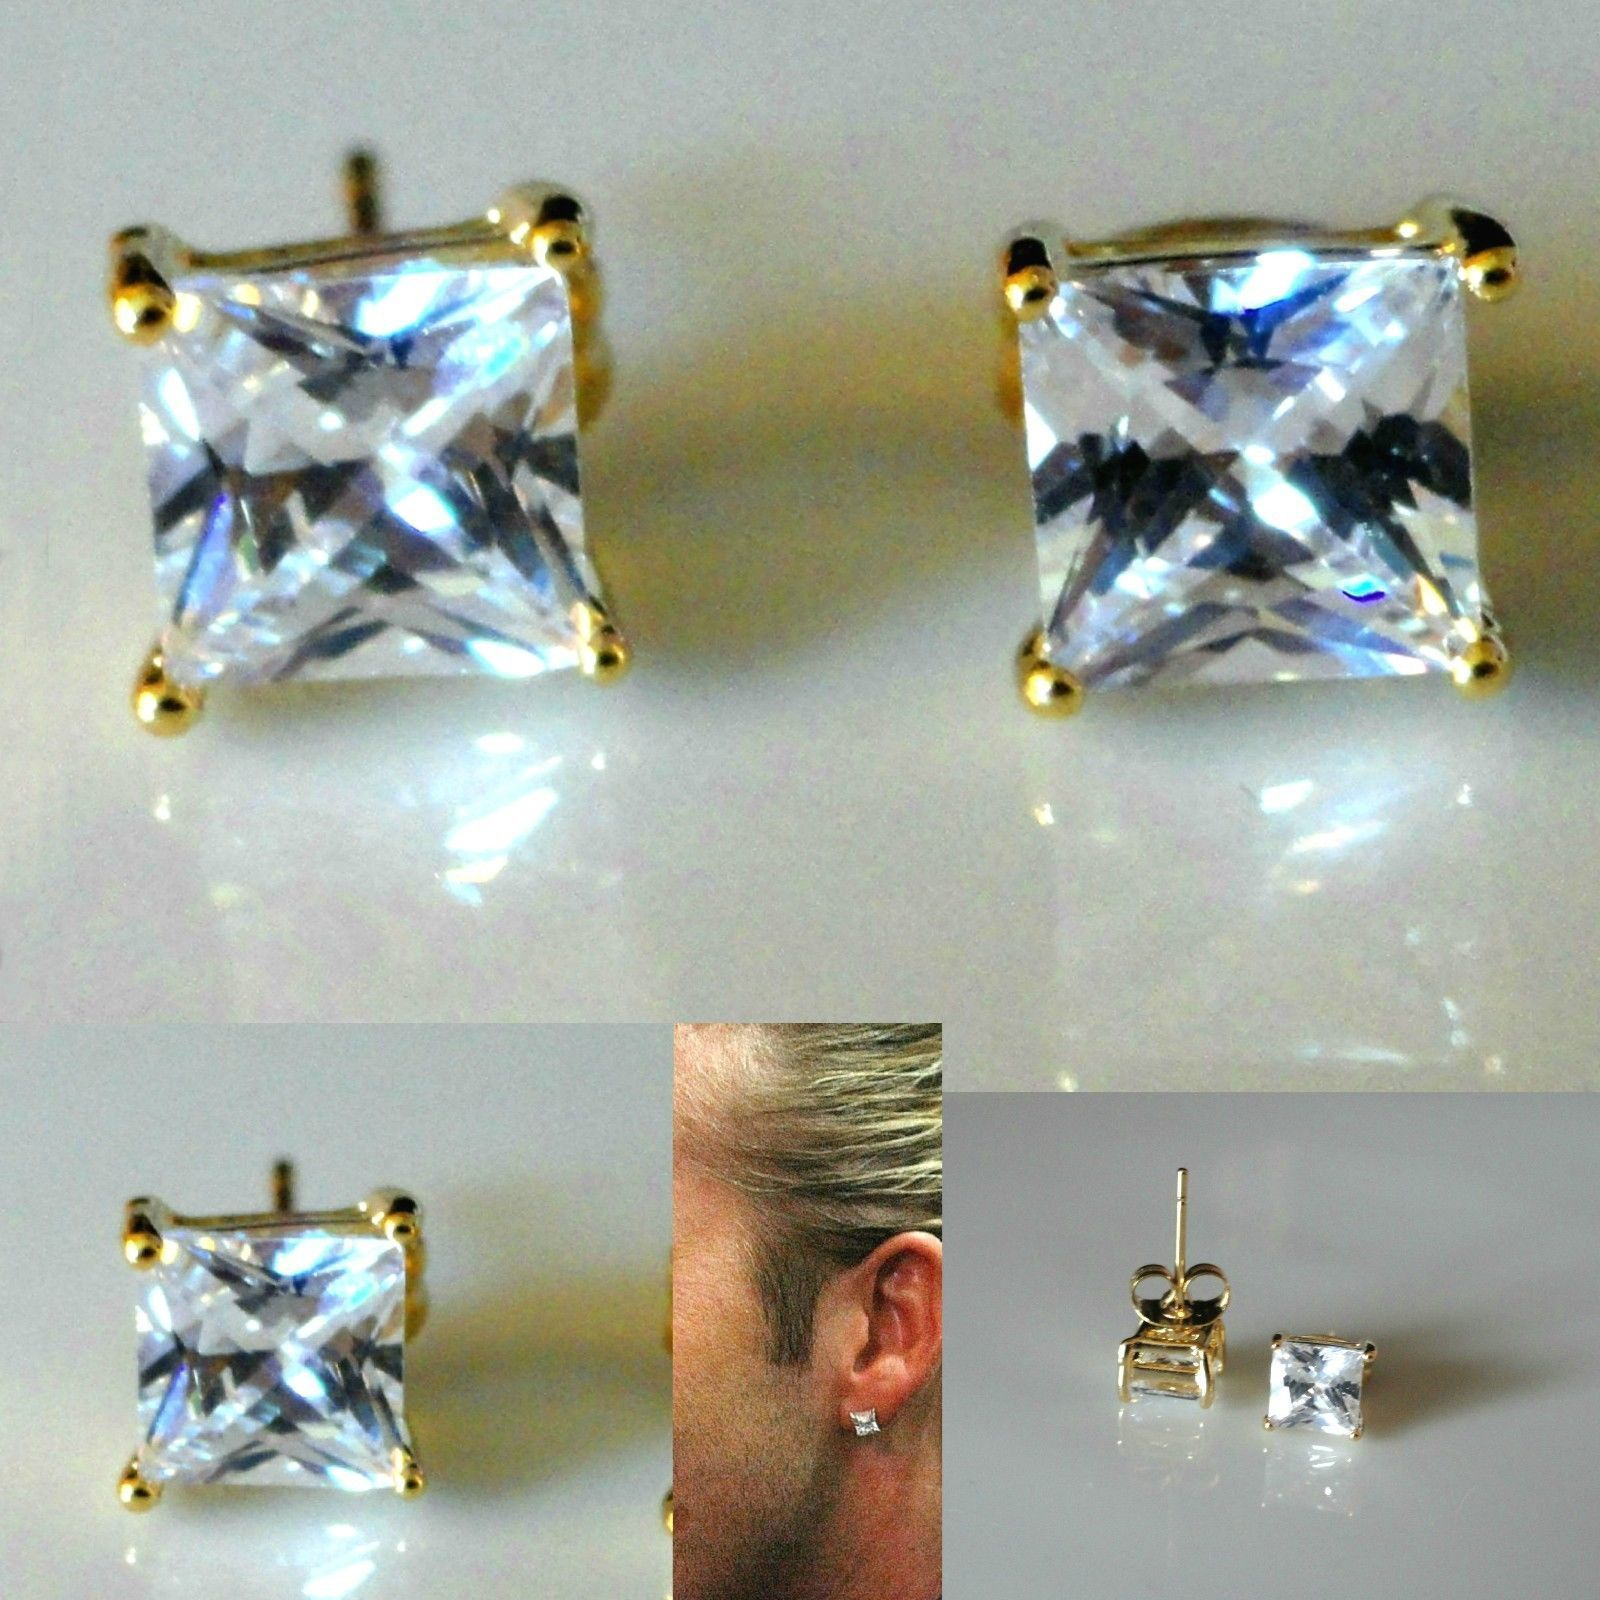 6 99 Gbp Men S Square 6mm Simulated Diamond Yellow Gold Filled Stud Earrings Uk